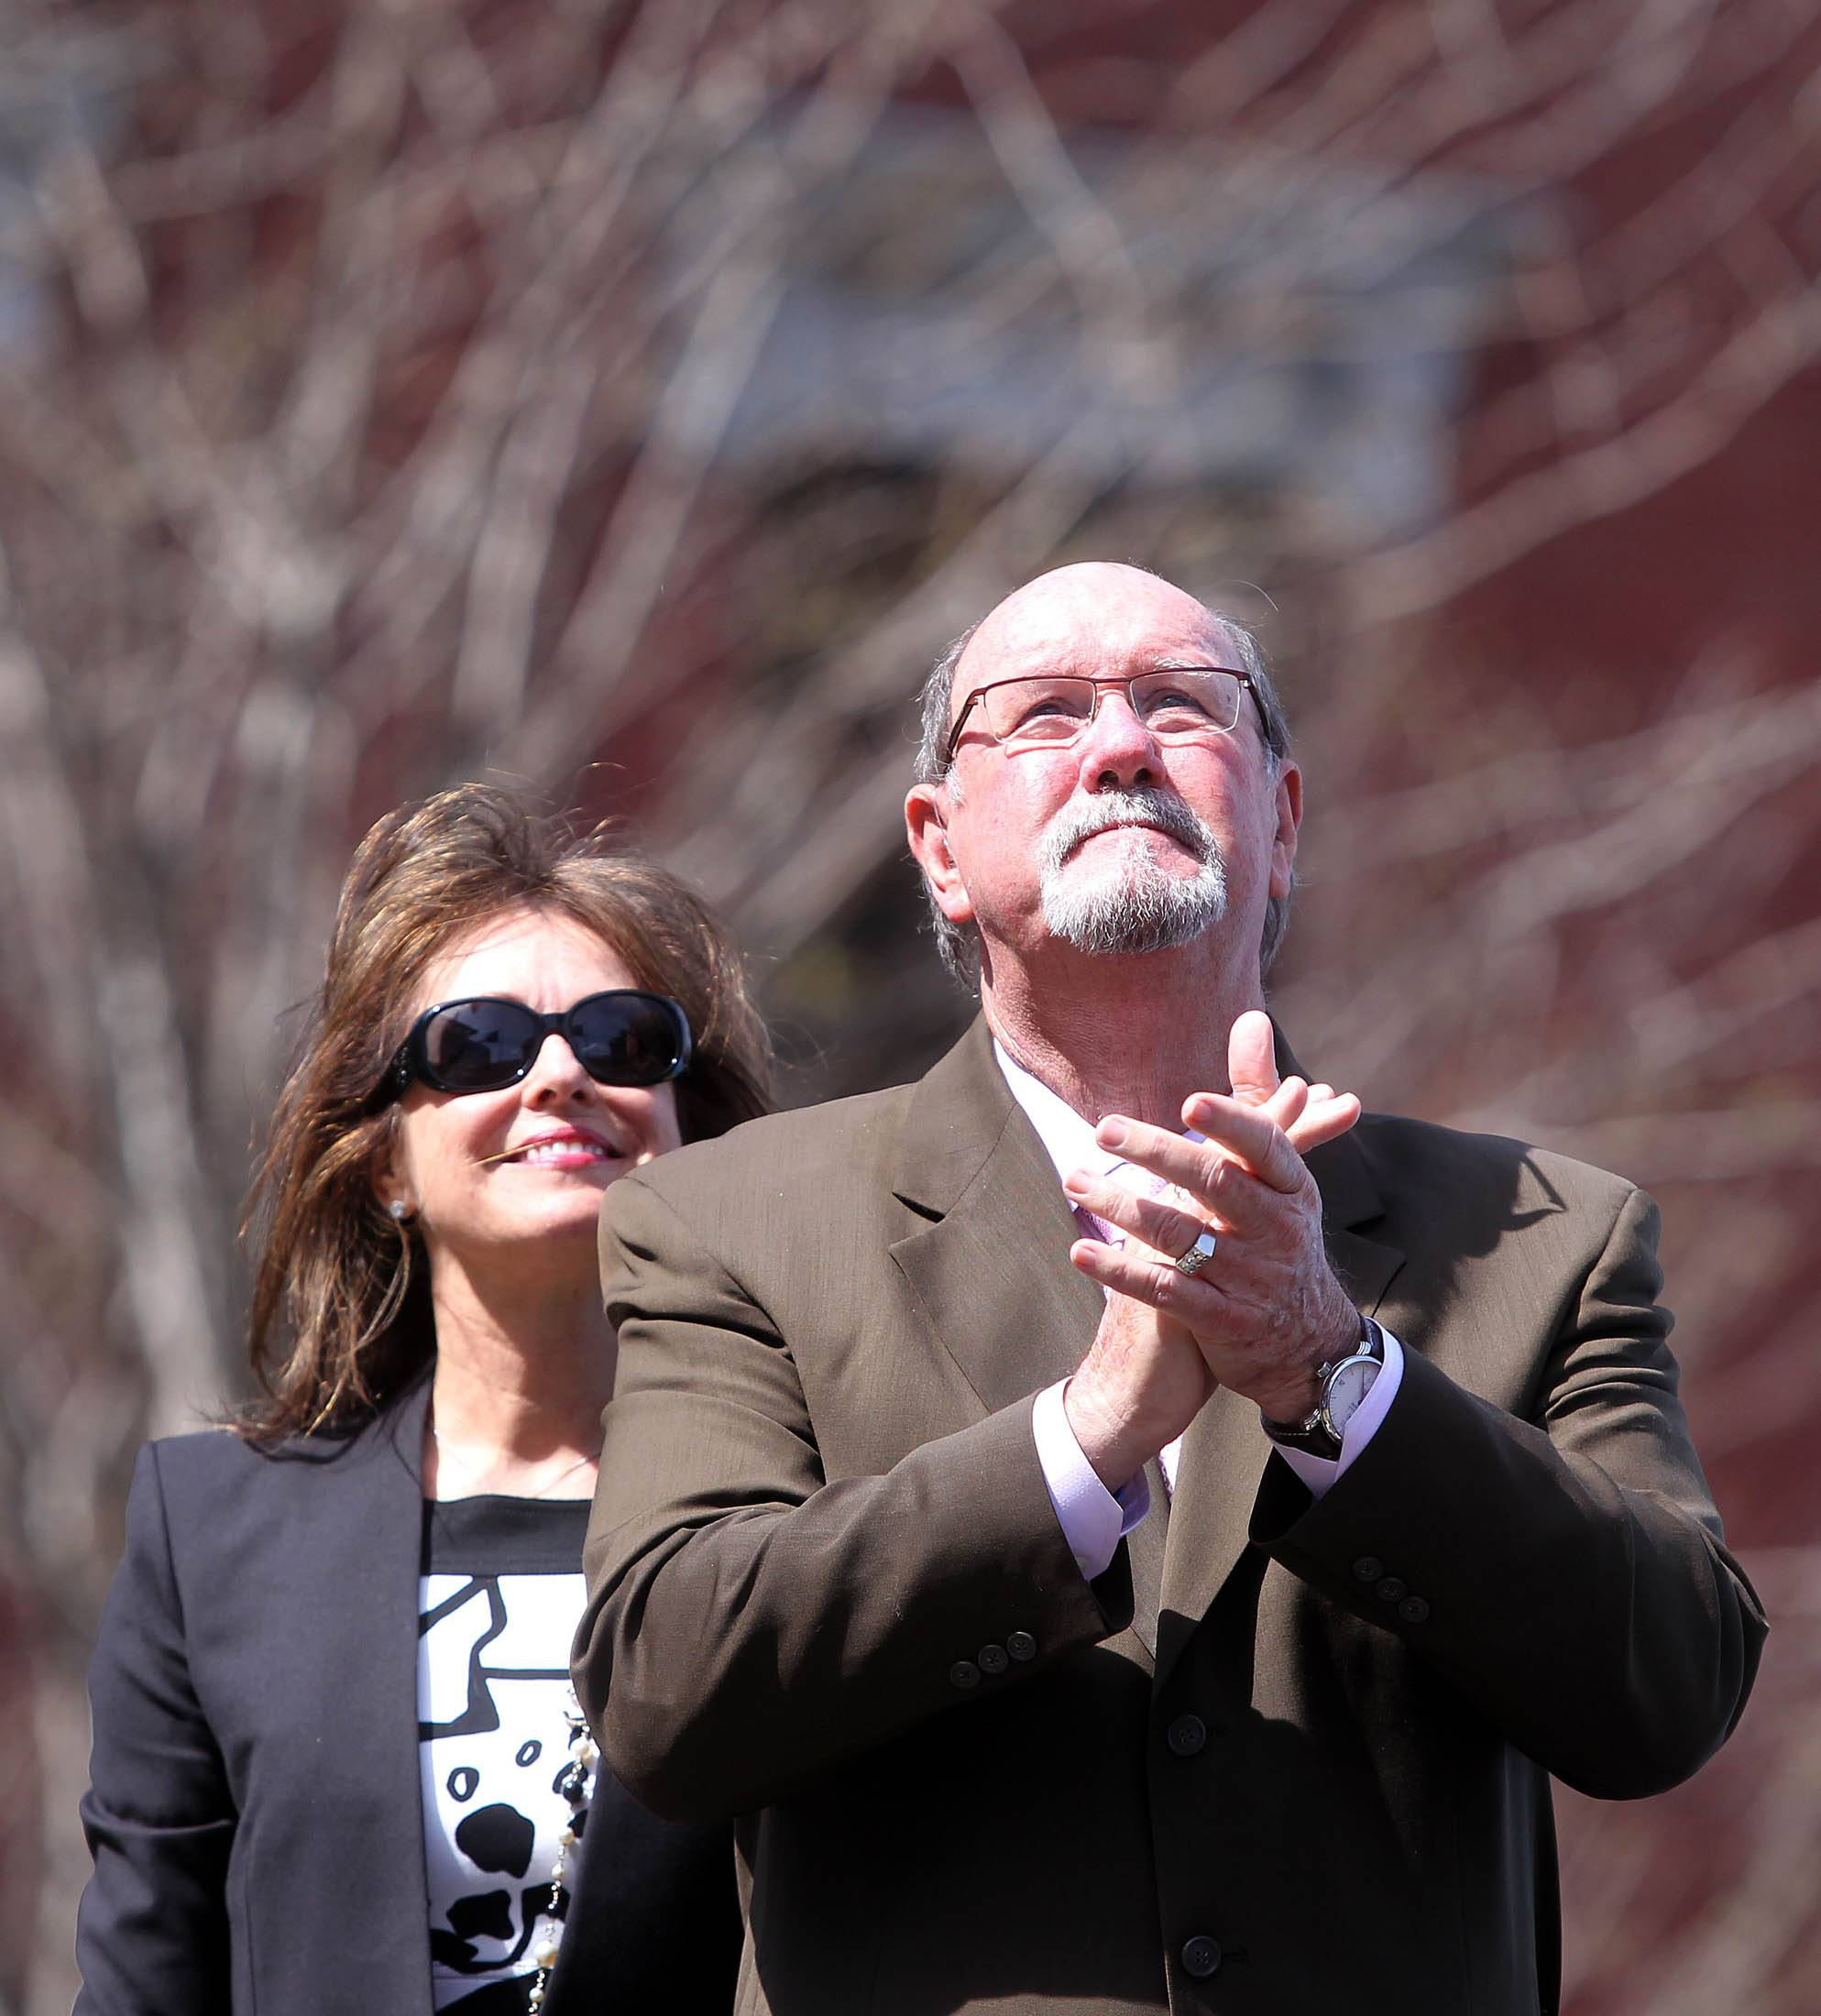 Boston Marathon bombing survivor John Odom stands with his wife, Karen, Monday during a flag-raising ceremony at Boston Medical Center.